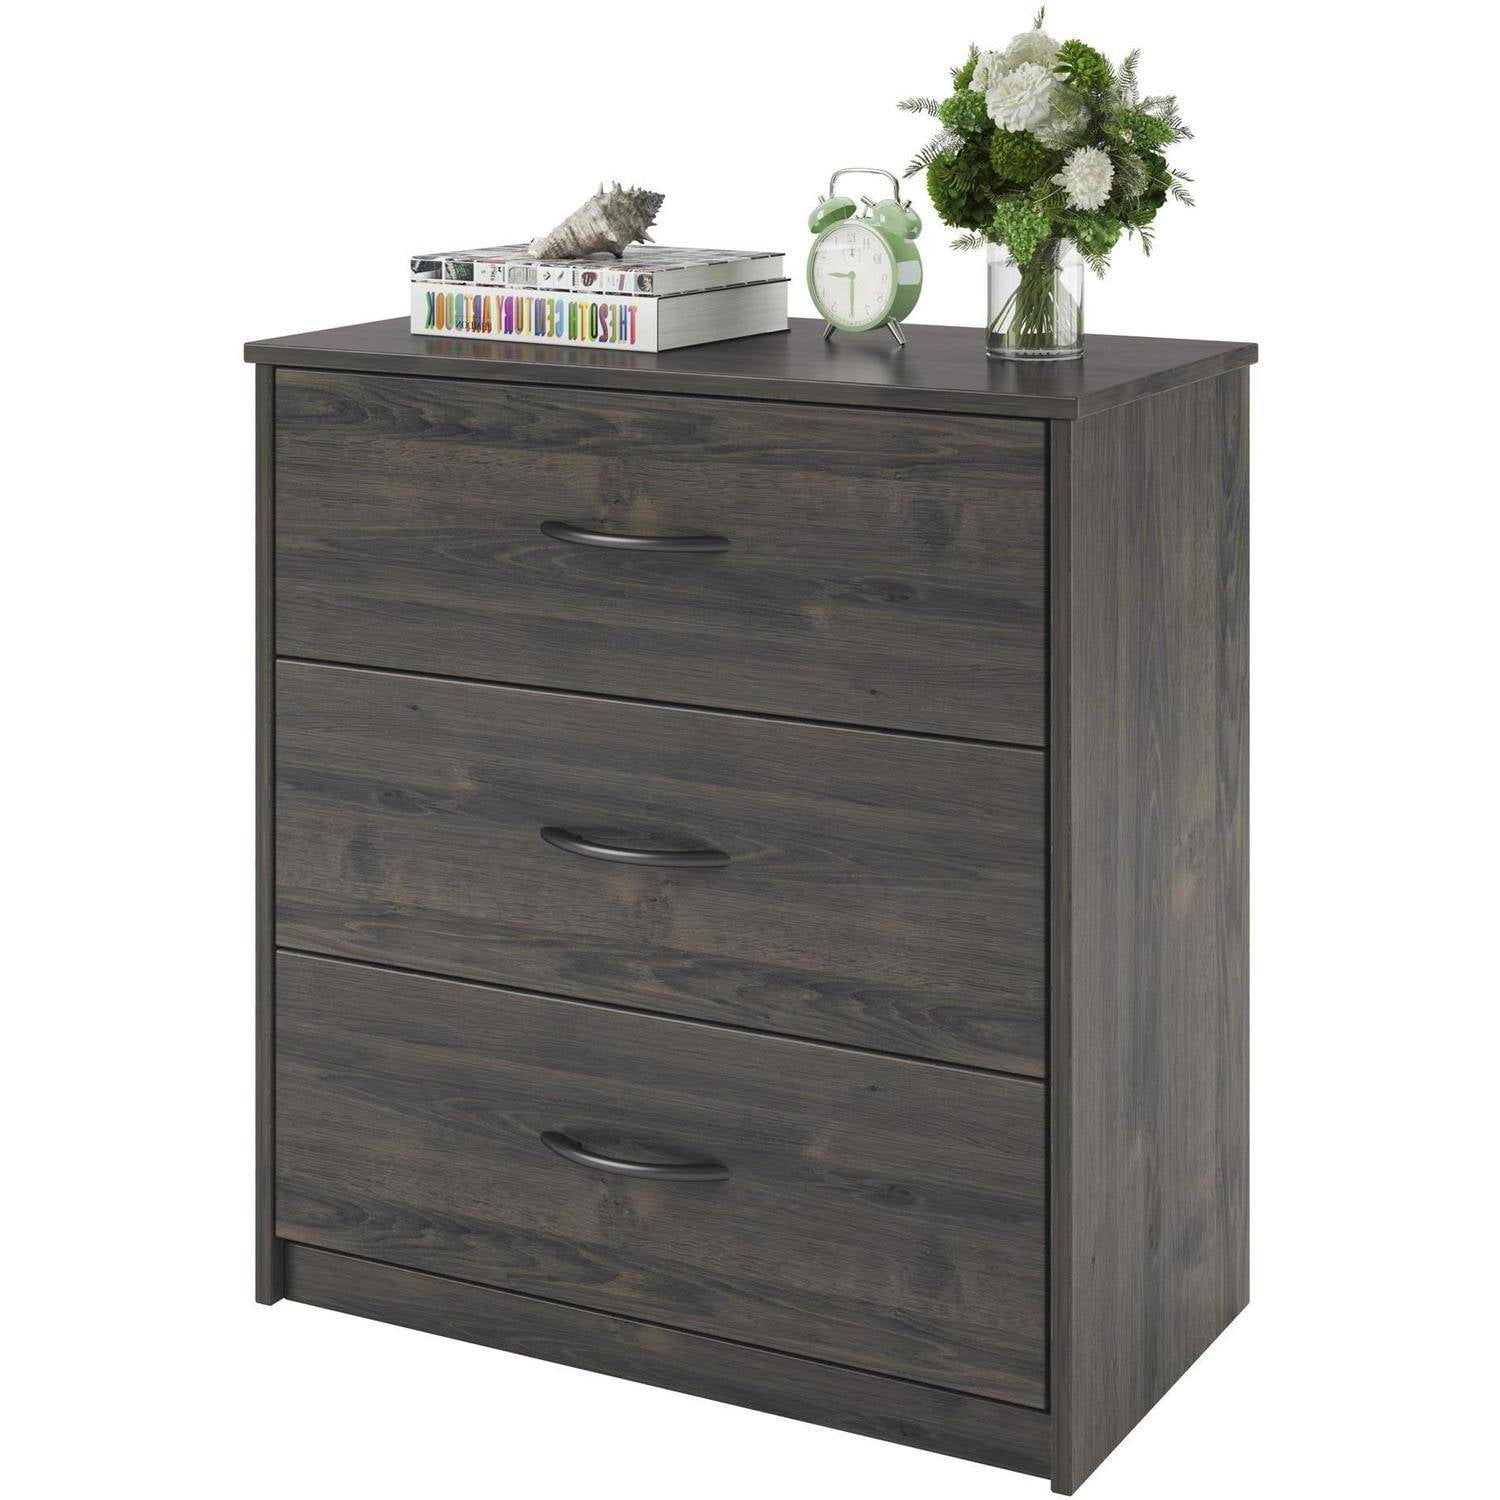 3 drawer dresser chest bedroom furniture black brown white 11198 | f1fef954 fc1b 446a 877b 6337167789da 1 55cc77c023865b26cc5ffdc4da6c993e